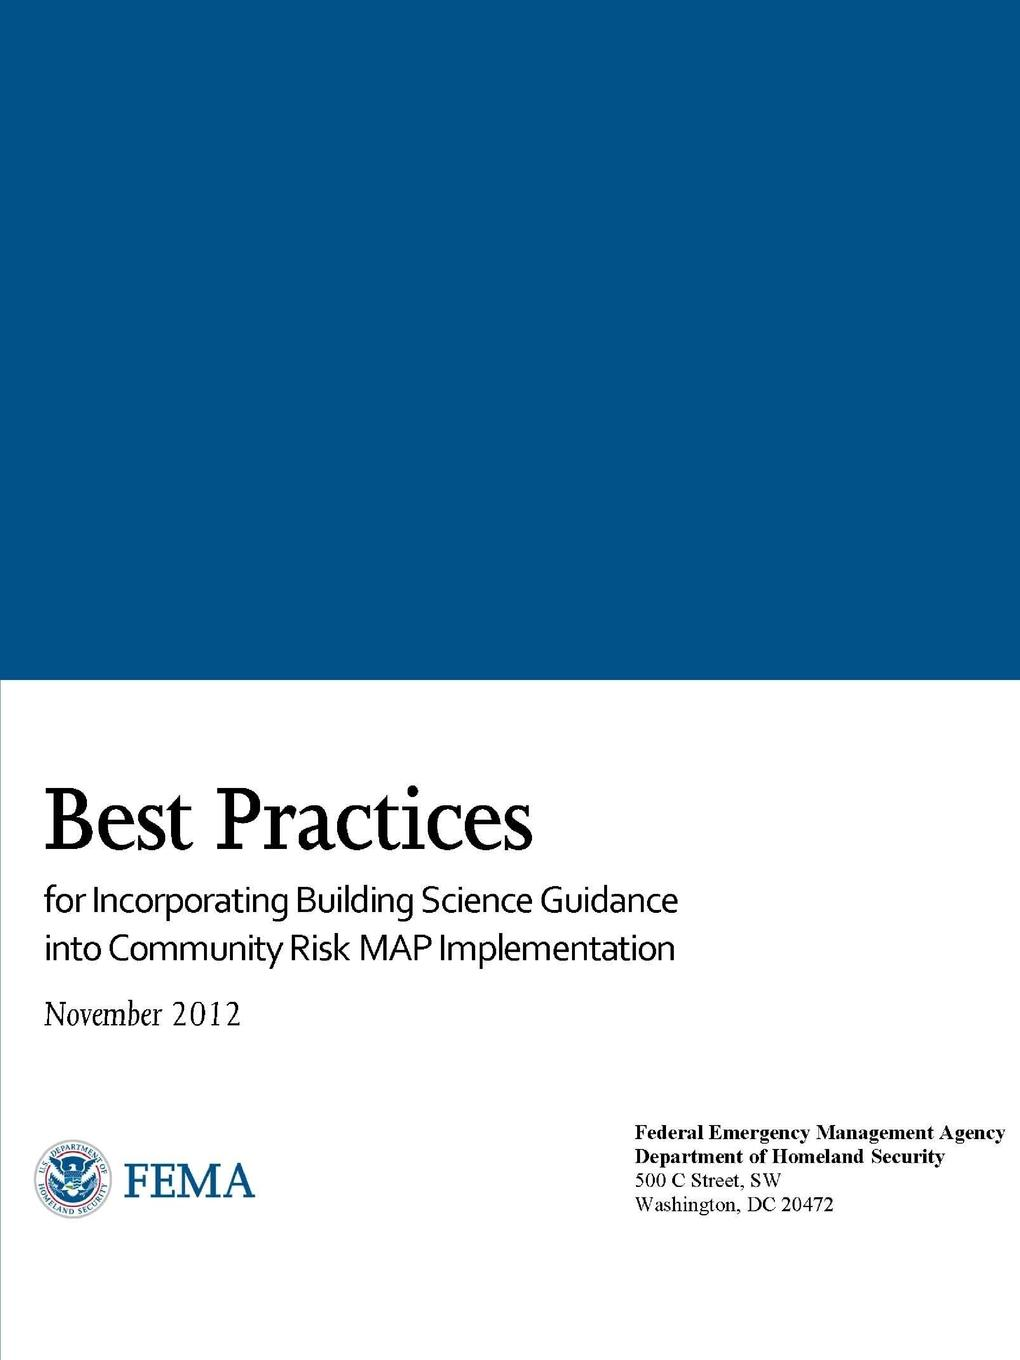 Federal Emergency Management Agency, Department of Homeland Security Best Practices for Incorporating Building Science Guidance into Community Risk MAP Implementation maureen fordham framing community disaster resilience